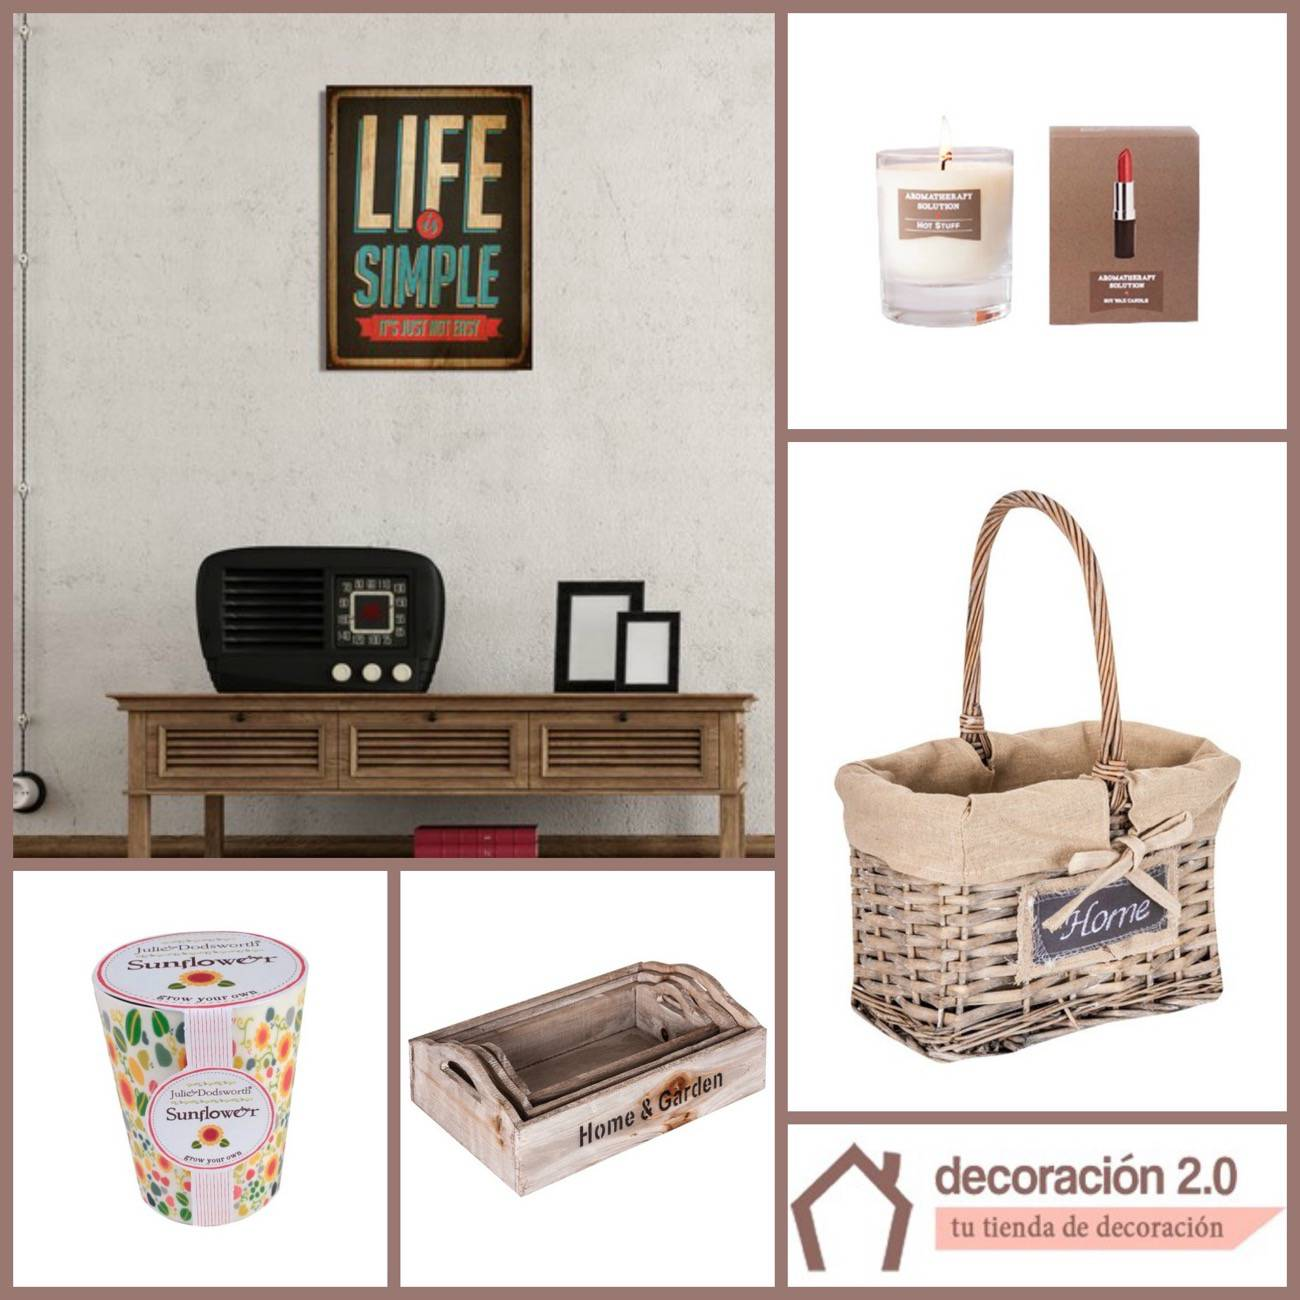 7 ideas para decorar una casa con poco dinero for Cosas de casa decoracion catalogo